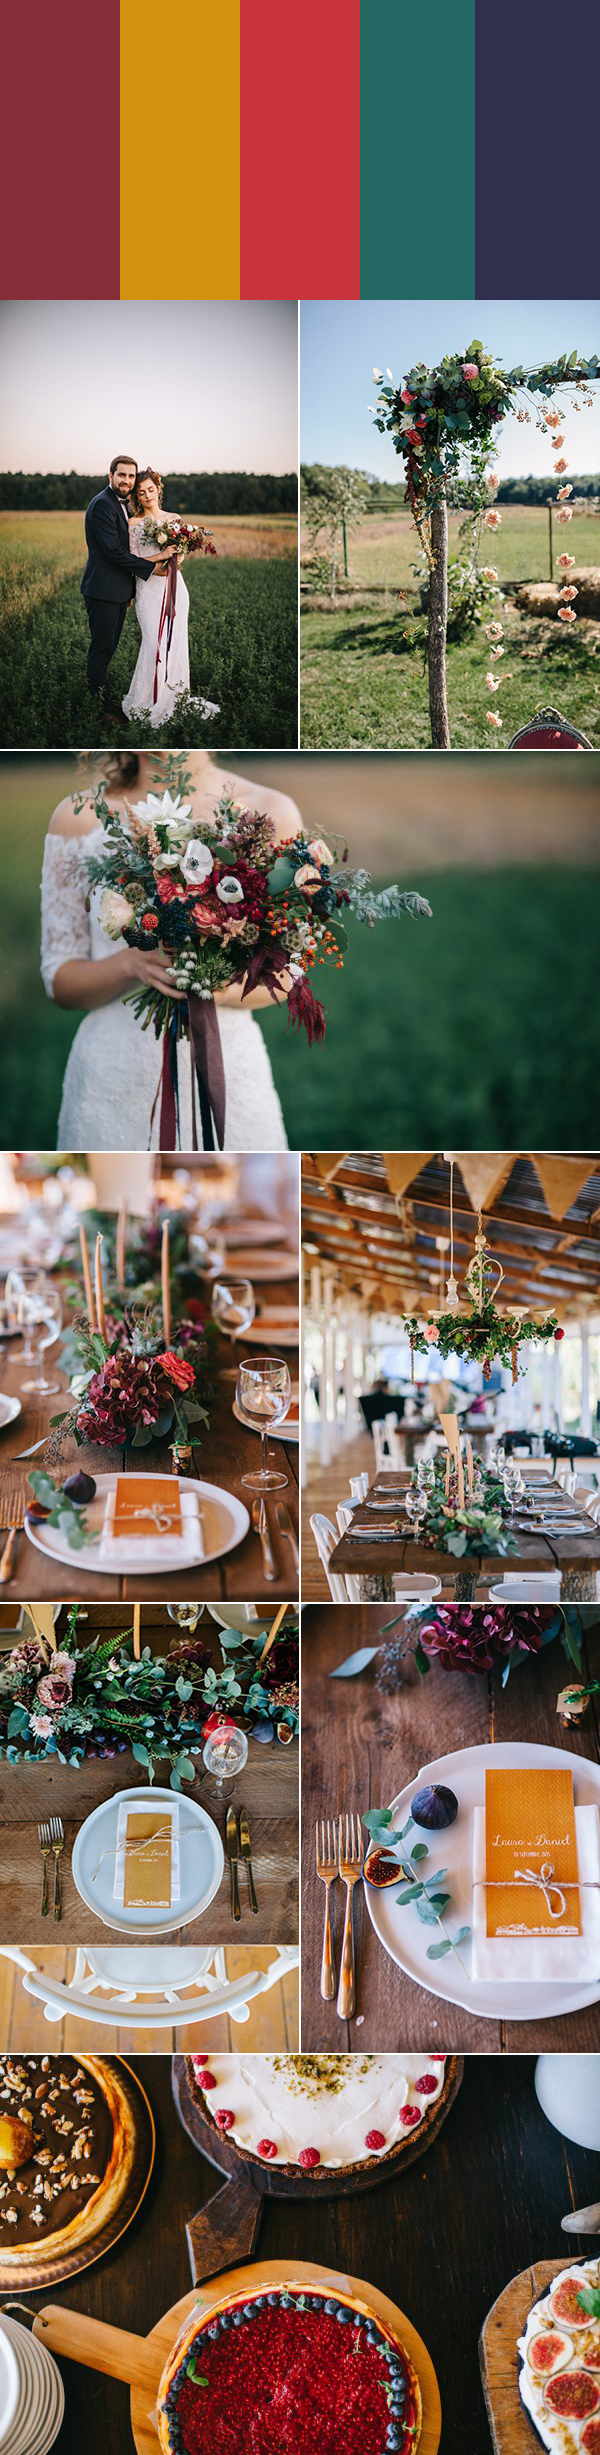 If You 39 Re Planning A Rustic Wedding At A Barn Ranch Or Farm Get Inspired By These Five Rustic Wedding Colors Wedding Color Palette Rustic Wedding Table